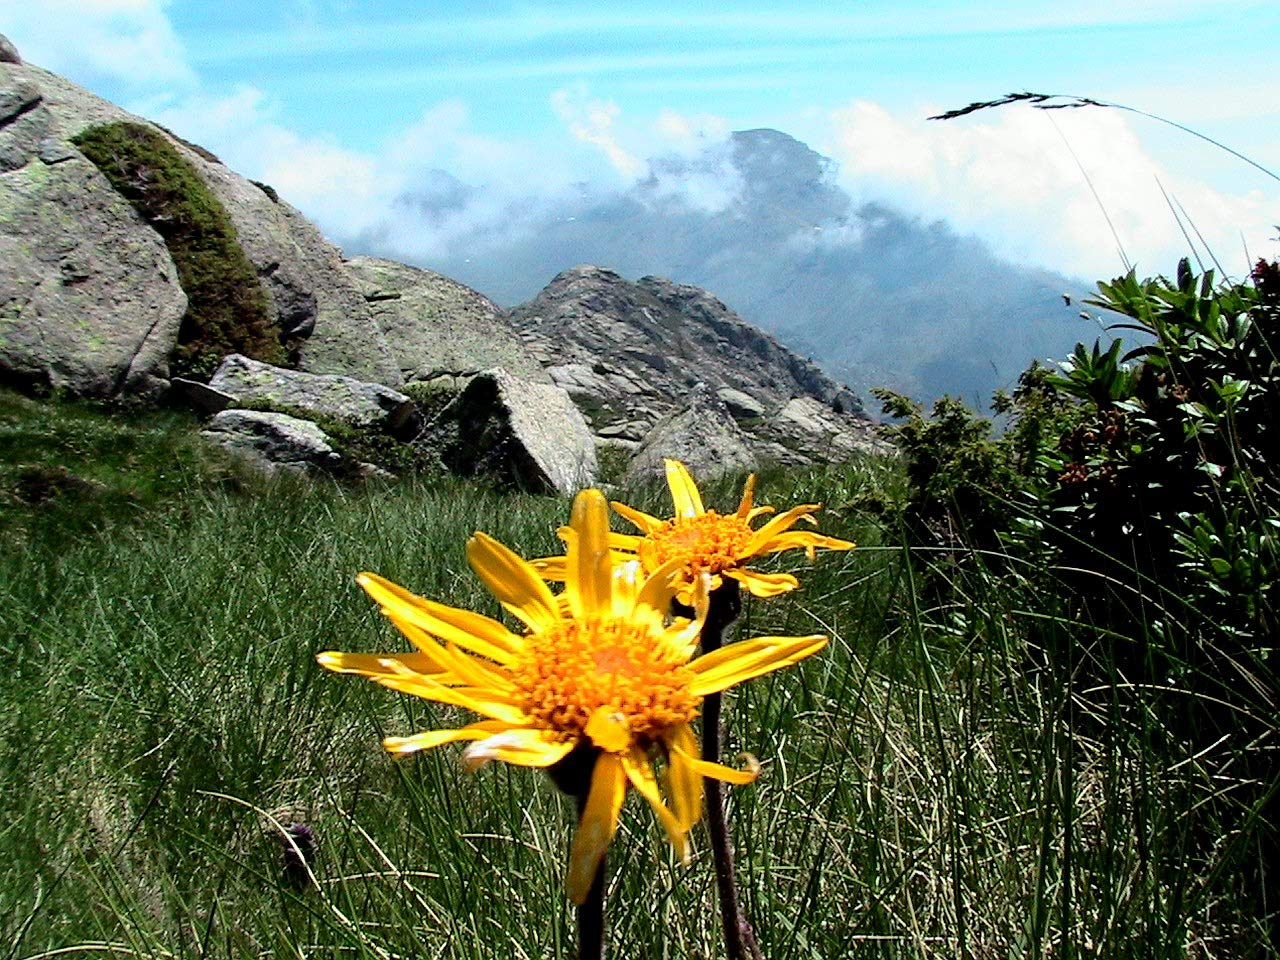 Asklepios-seeds/® Mountain Arnica Wolfs Bane leopards Bane Mountain Tobacco 100 Seeds Arnica Montana